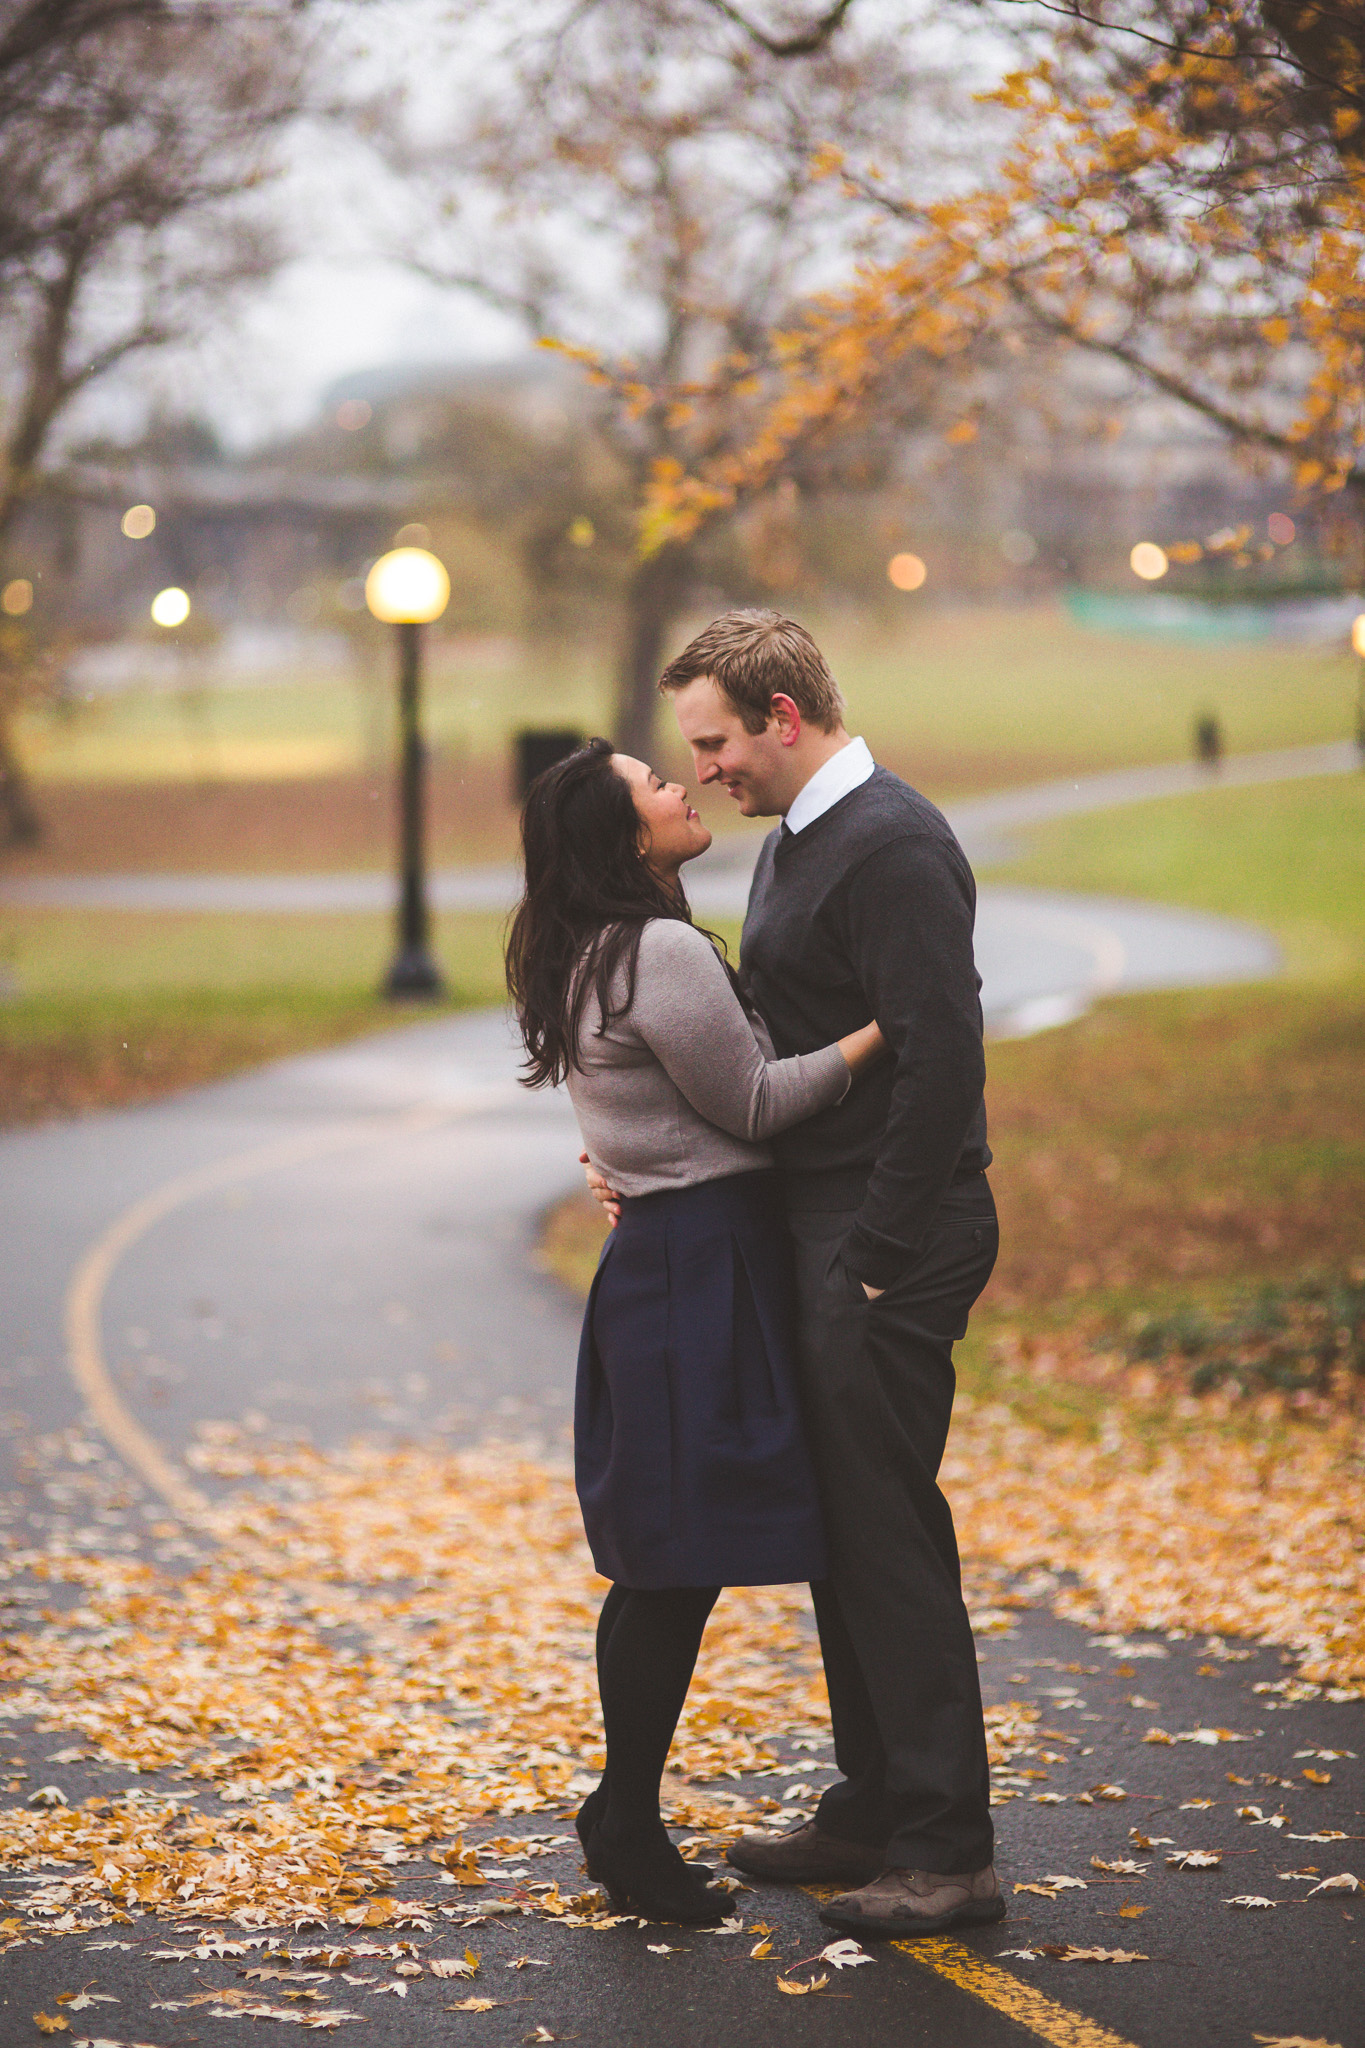 jackets-off-on-cold-engagement-shoot